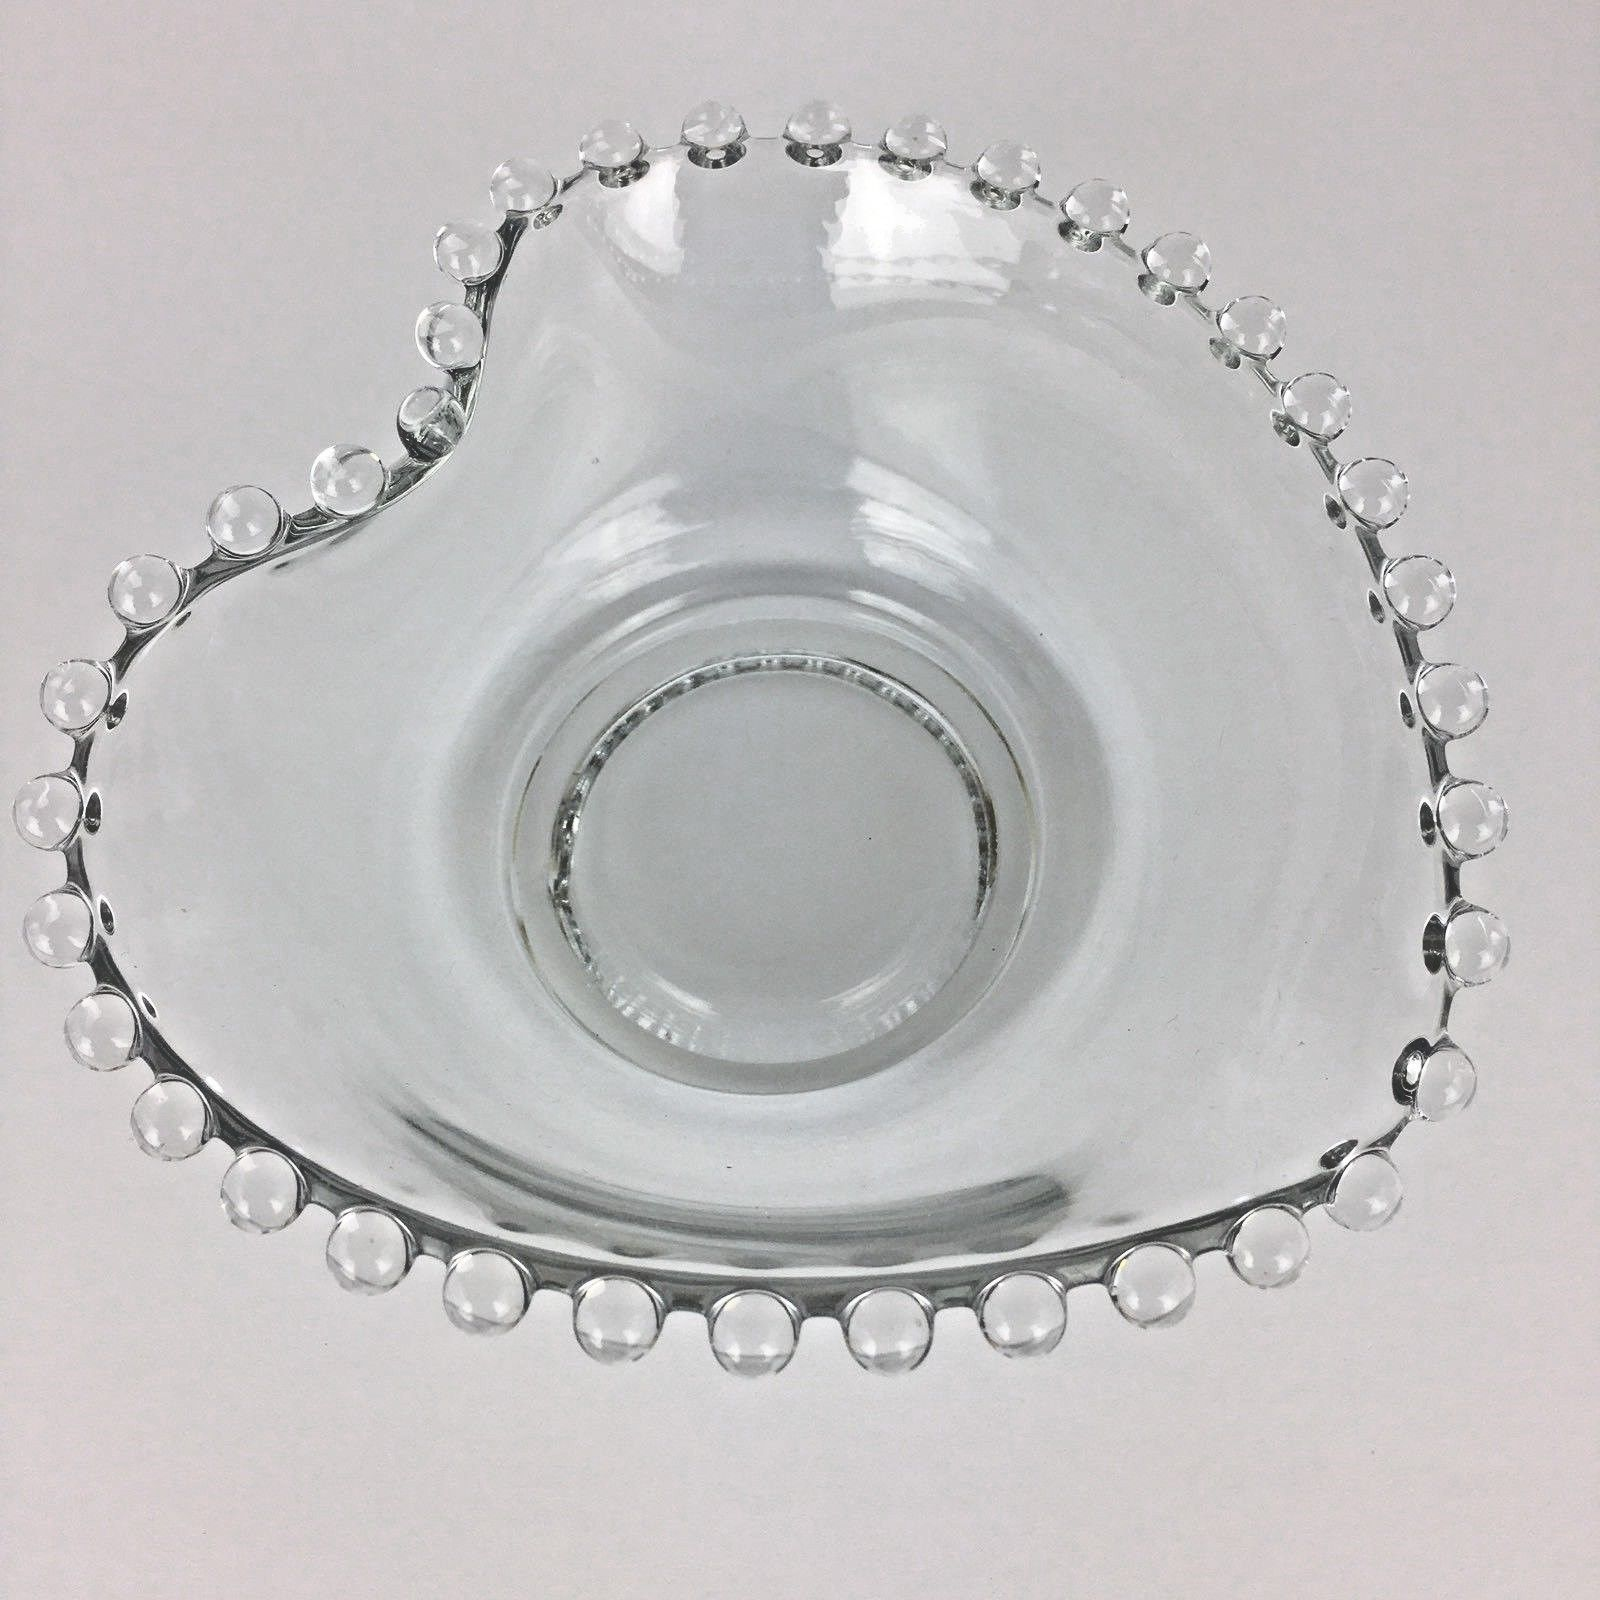 """Candlewick Imperial Heart Mayonnaise Bowl Vintage 5"""" Candy Nut Clear Glass MI352"""